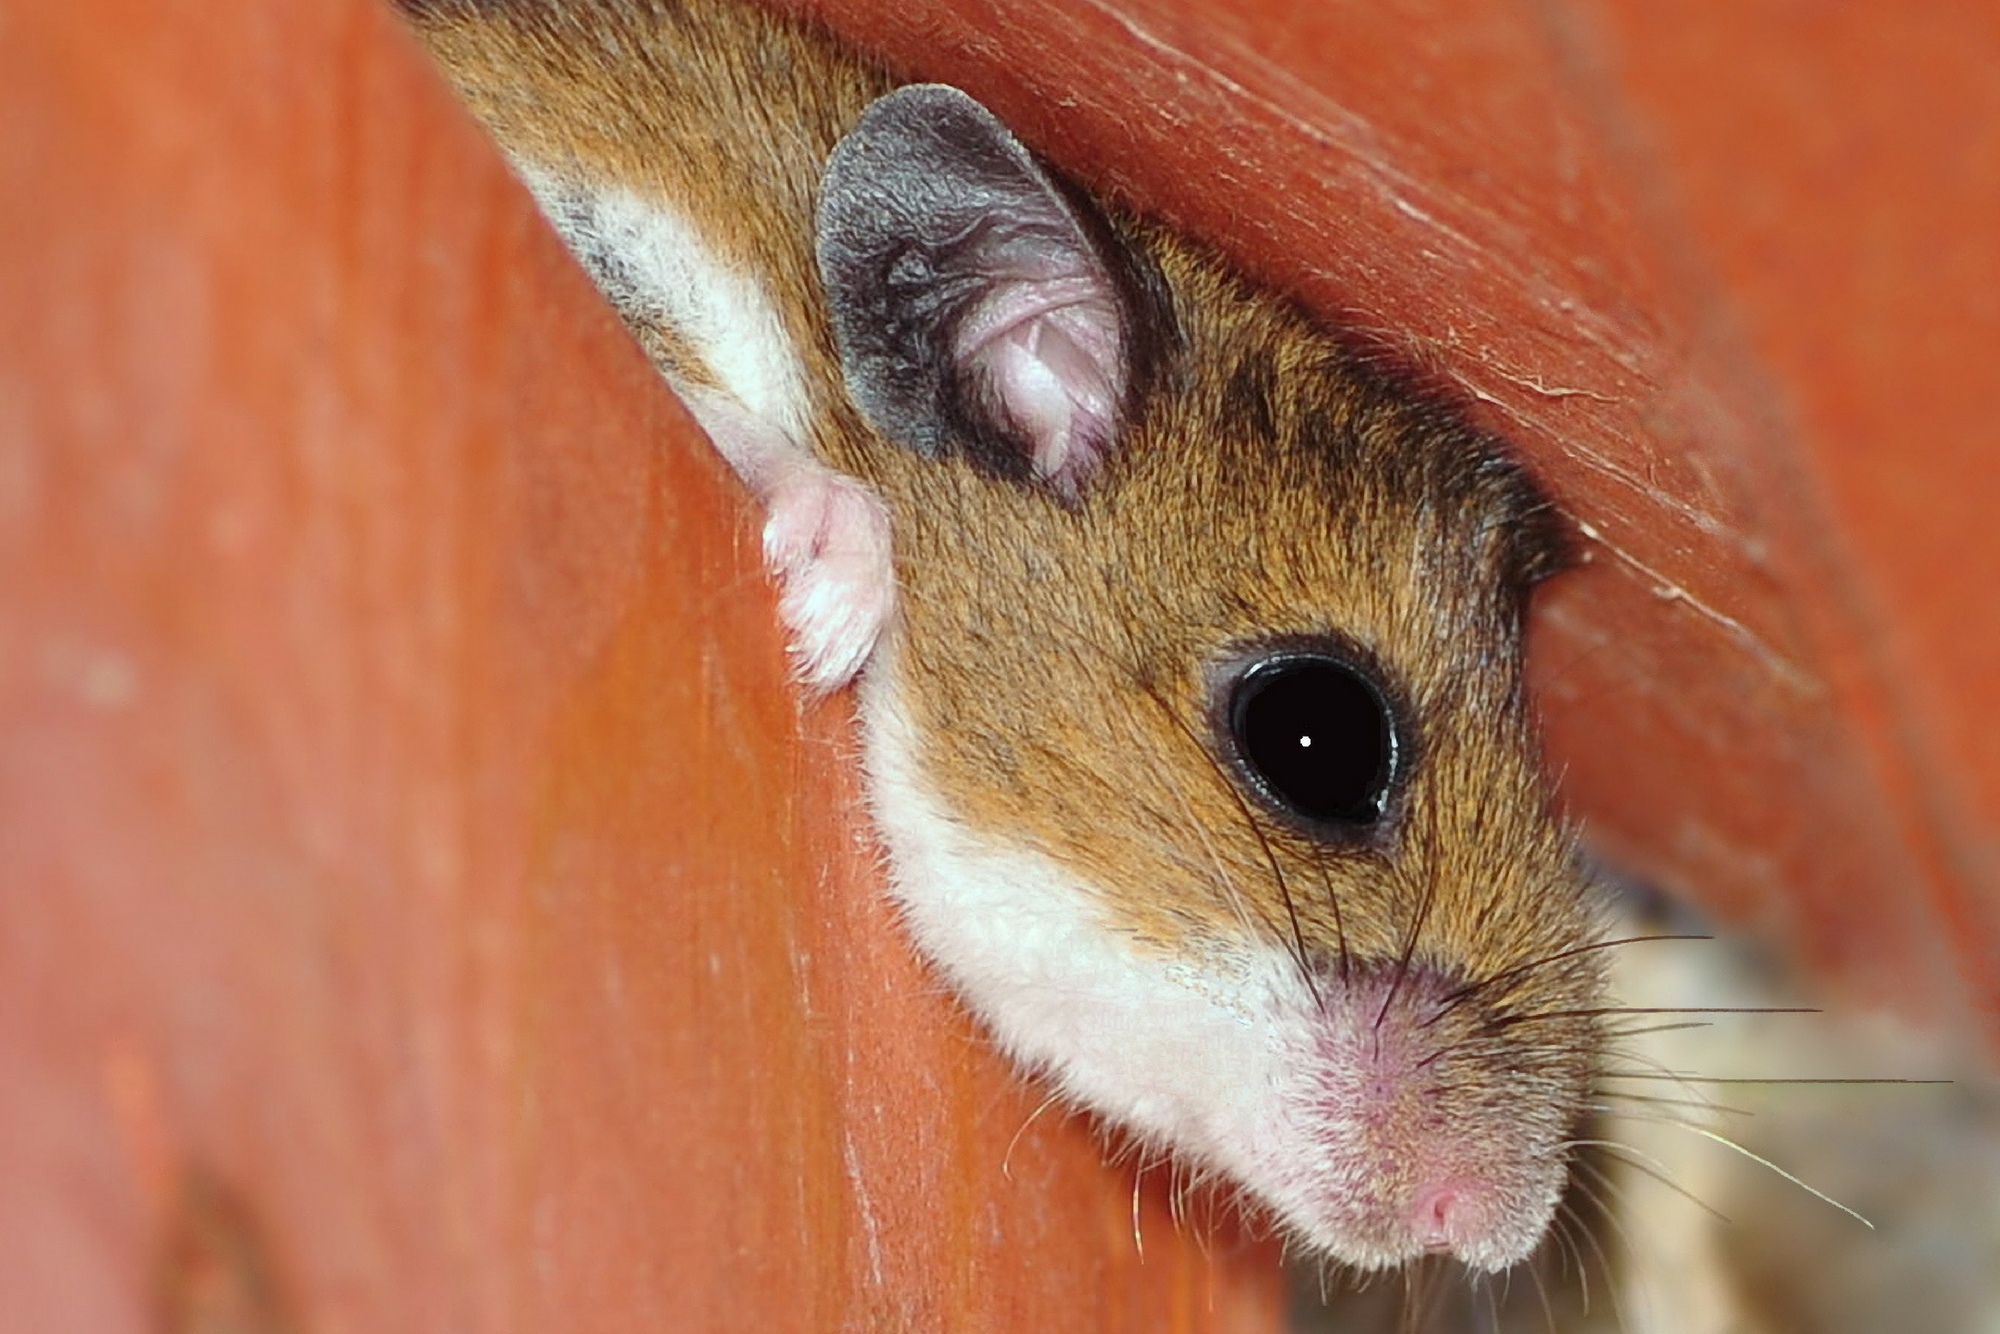 a deer mouse hiding in a wooden structure